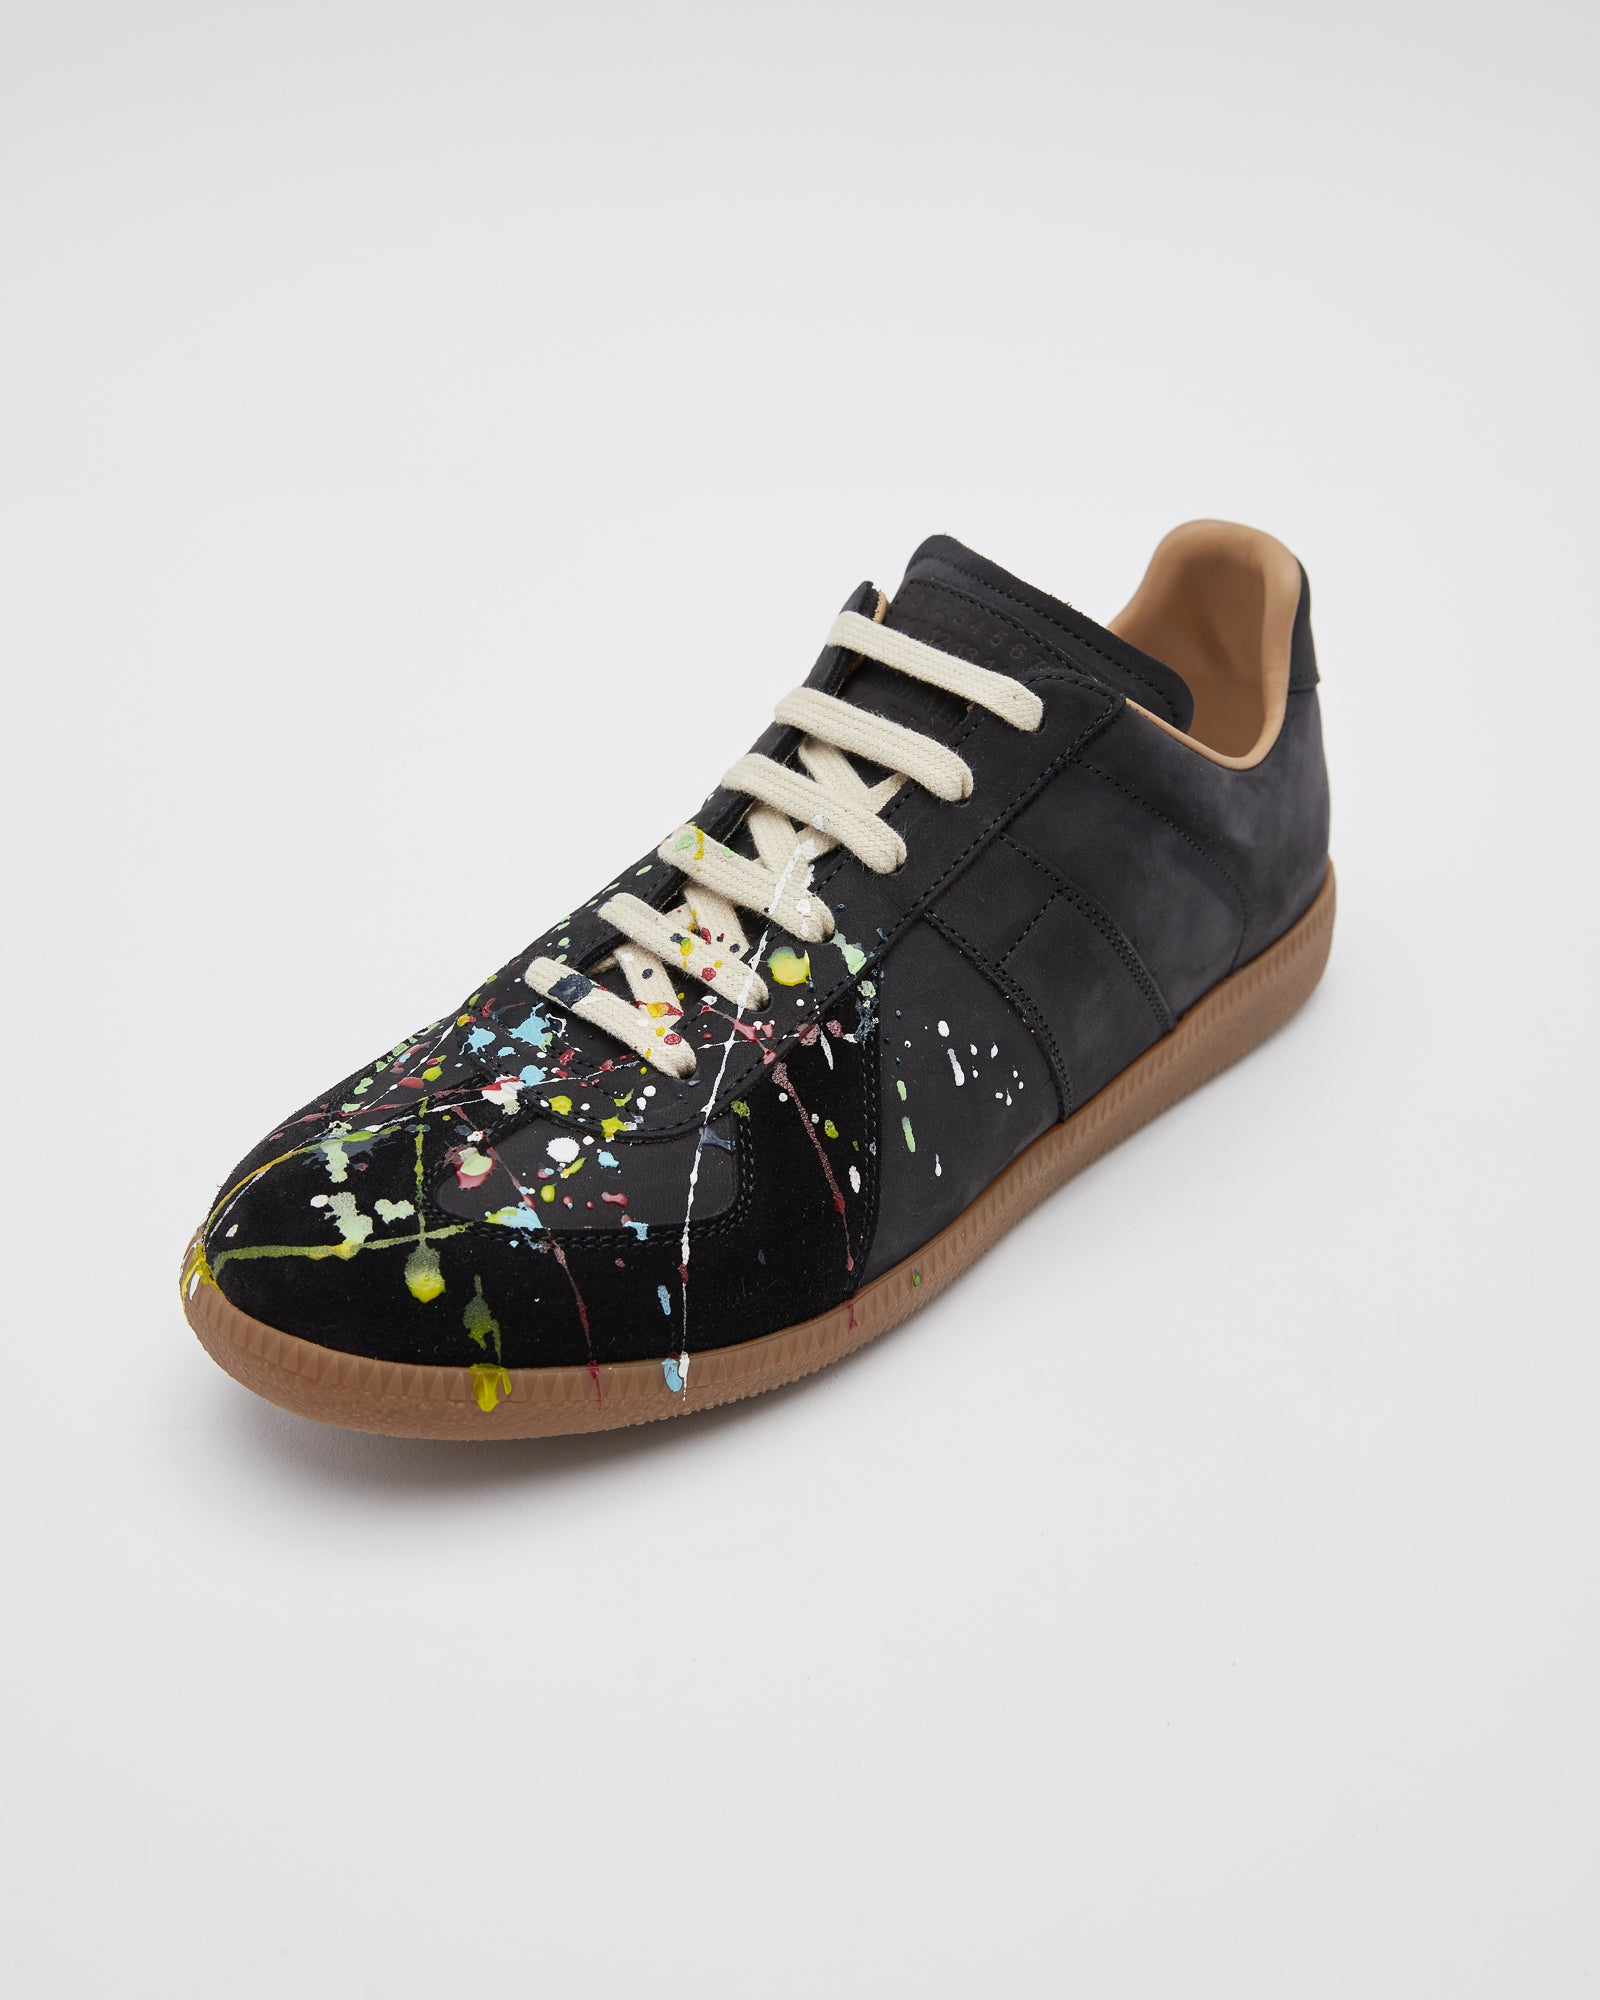 Replica Painter Sneakers in Black